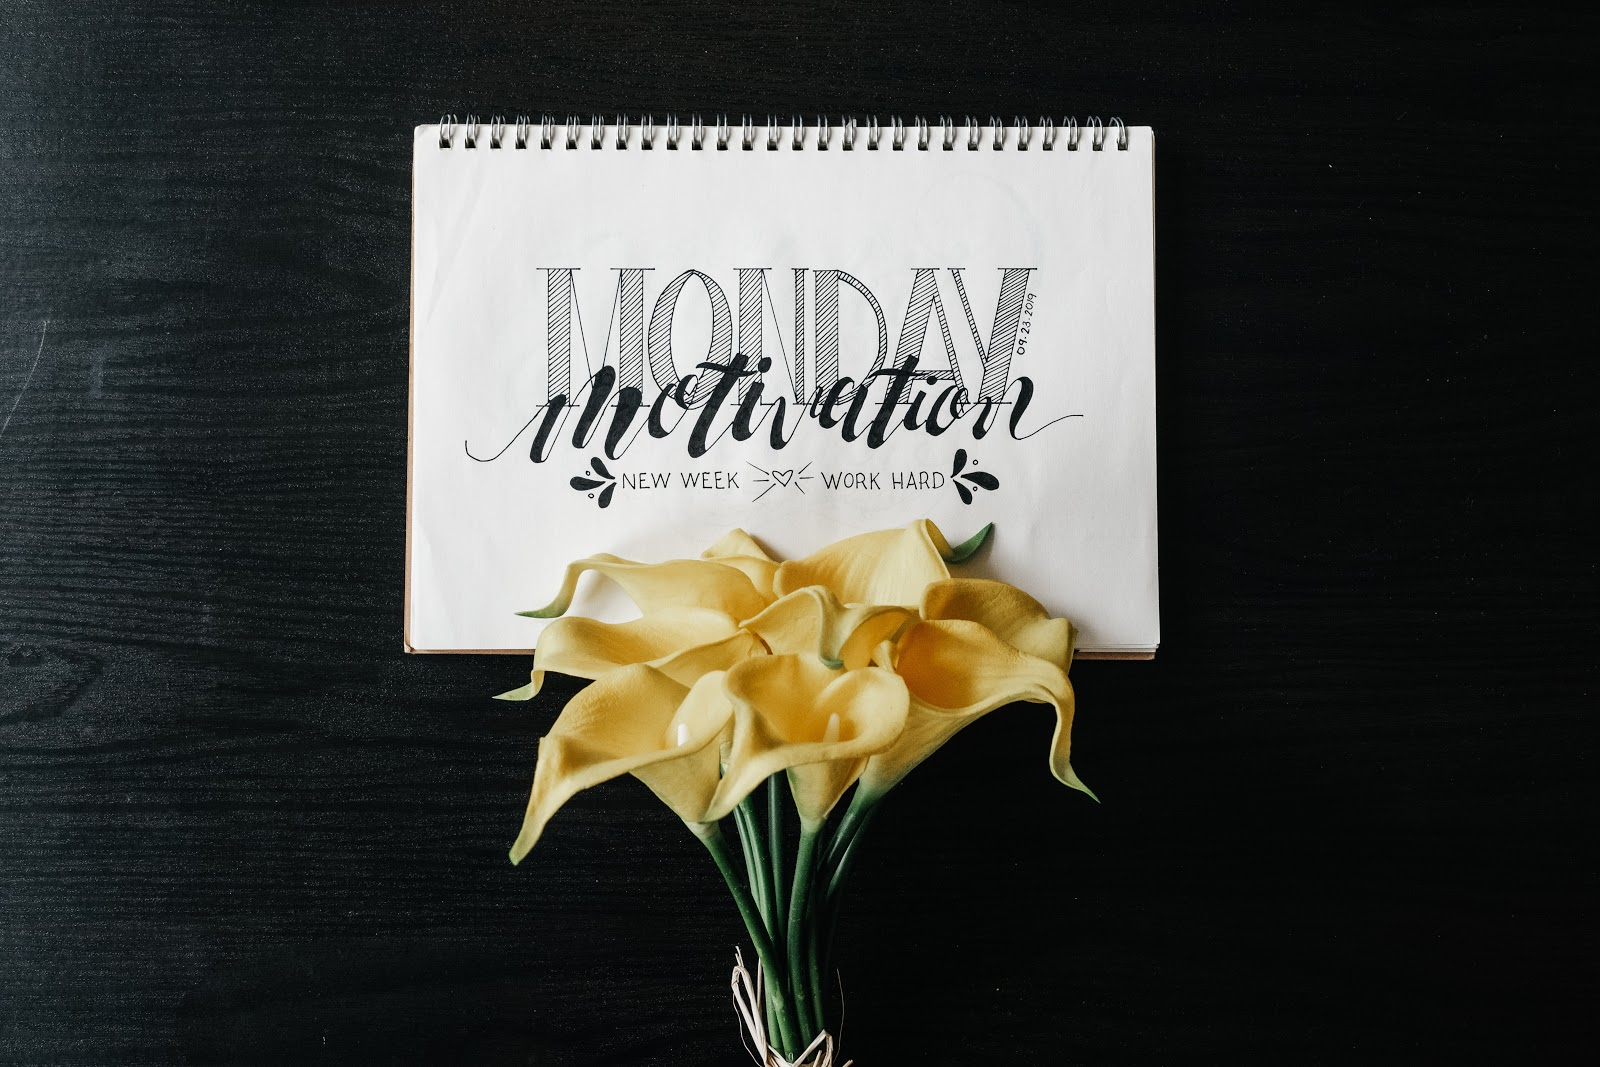 Notebook with written lettering on a black table with flowers